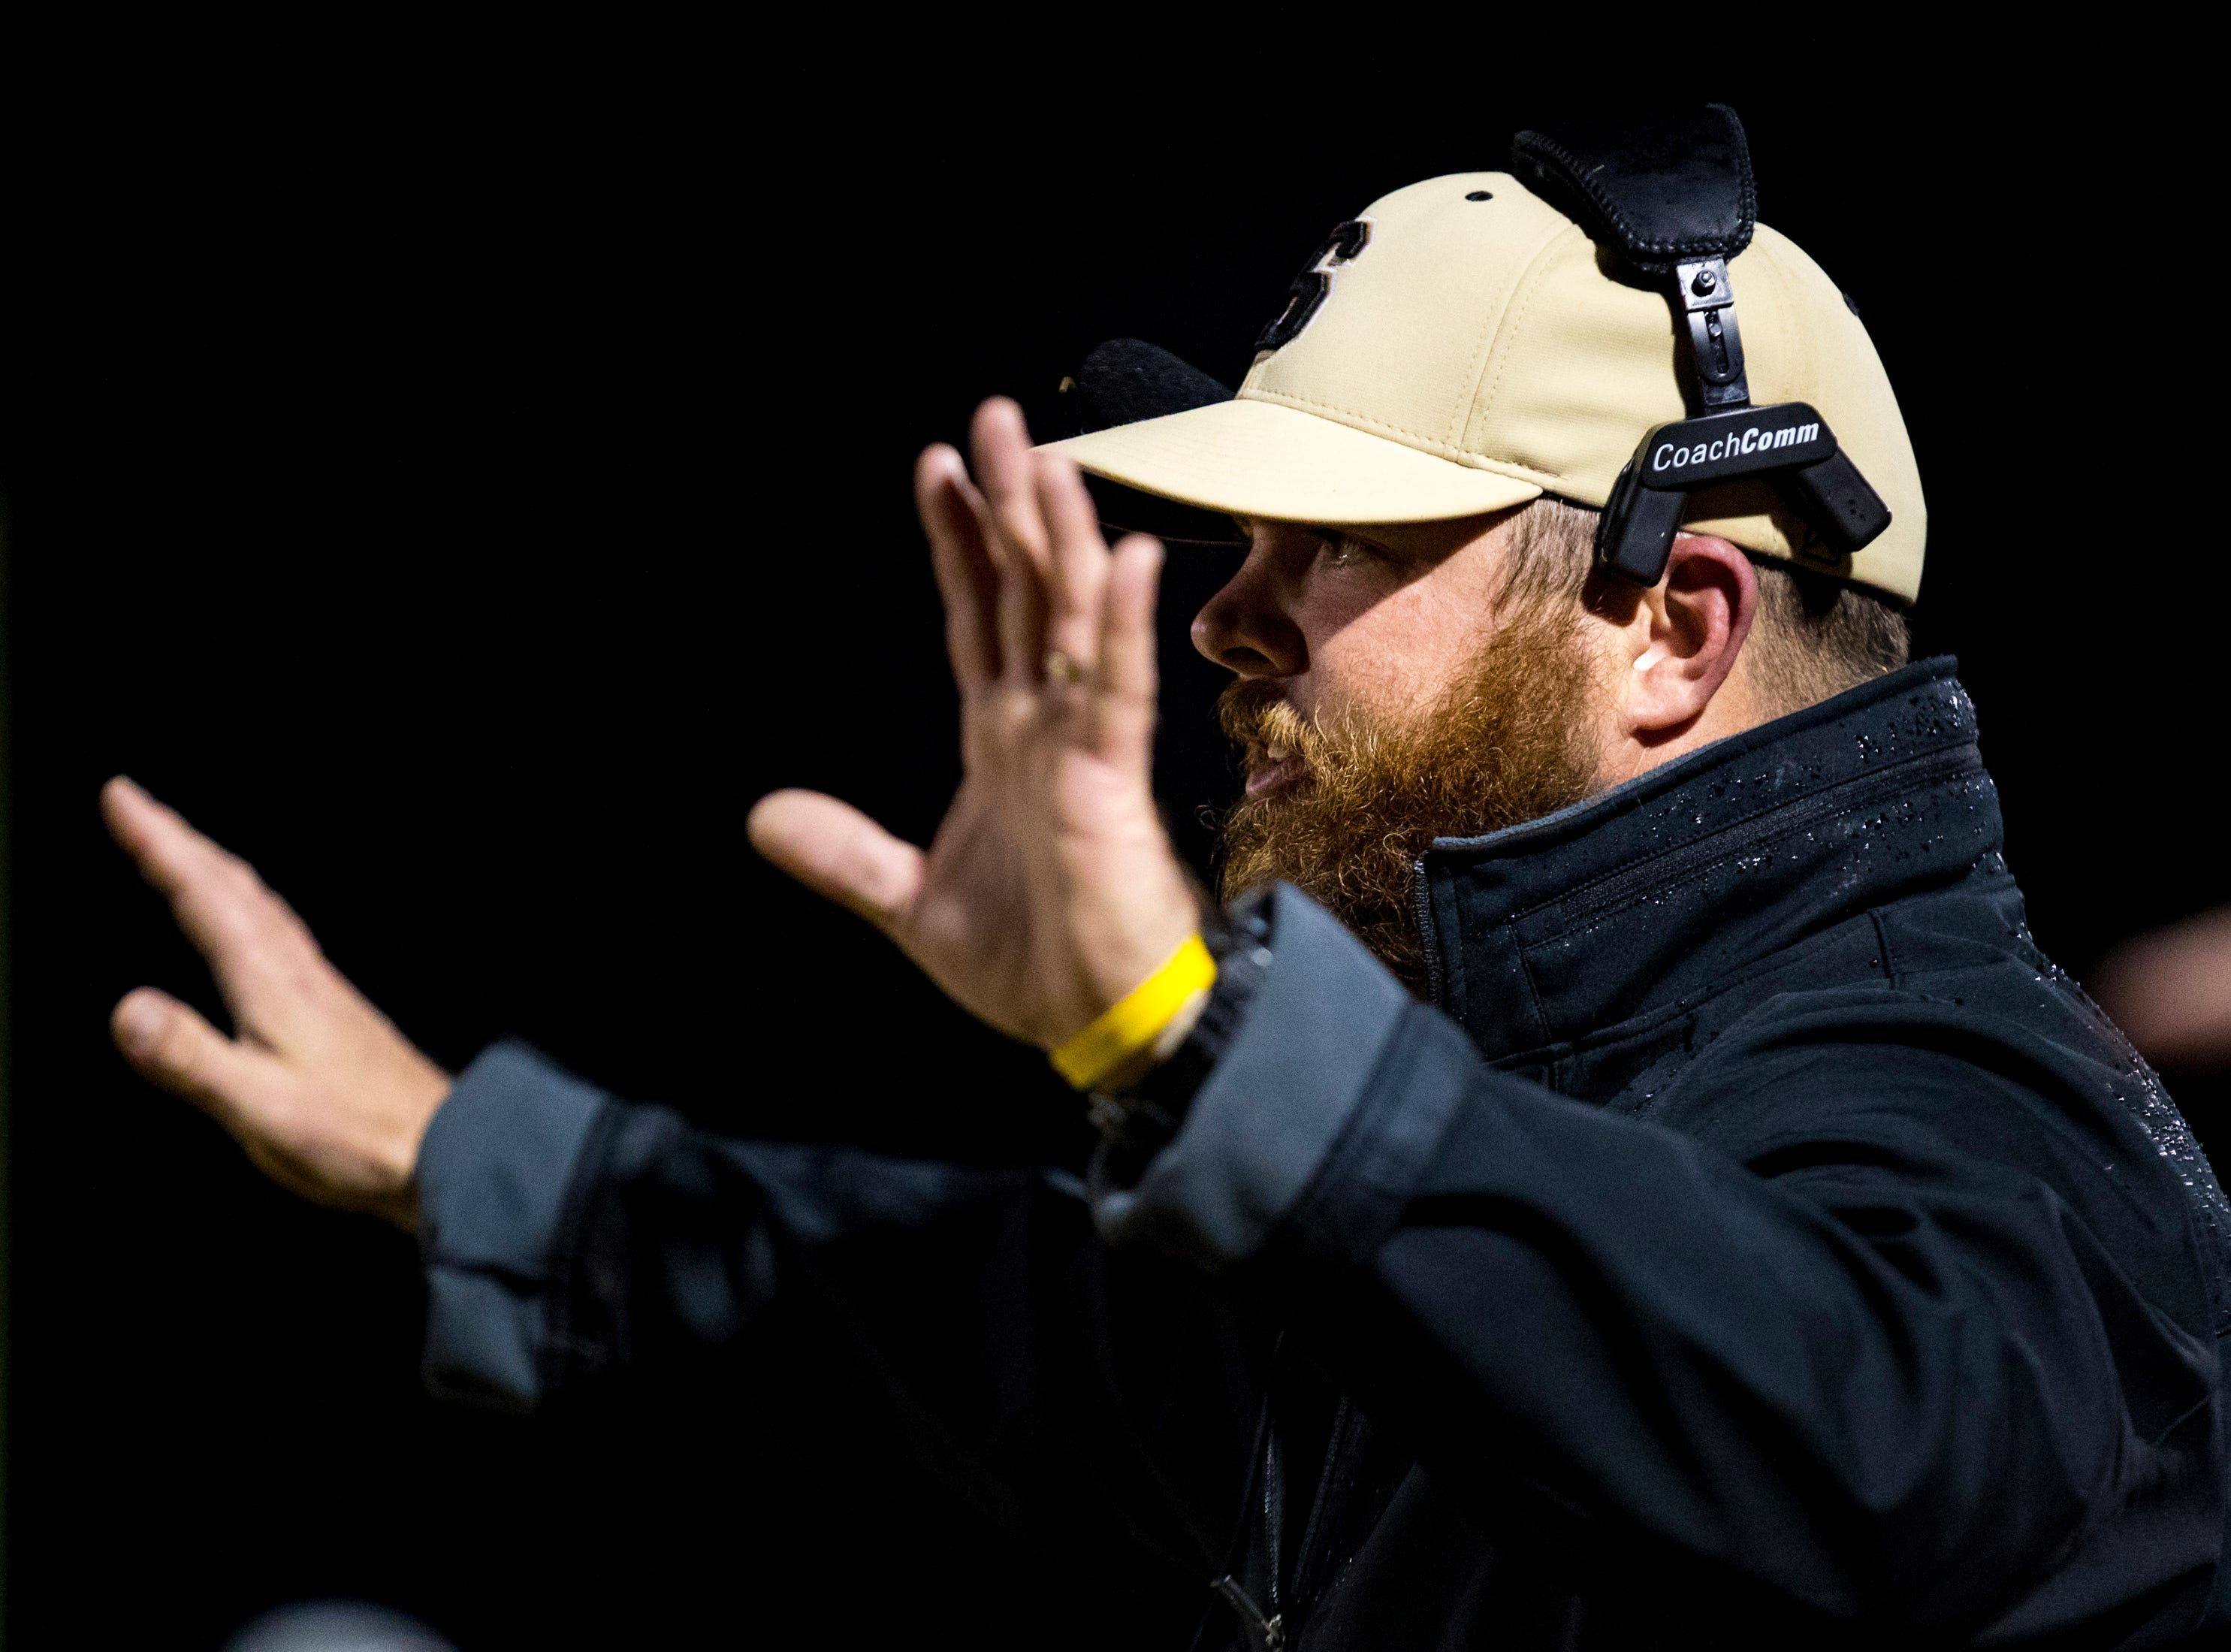 Springfield's head coach Dustin Wilson during Springfield's game against Chester County at Springfield High School in Springfield on Friday, Nov. 2, 2018.